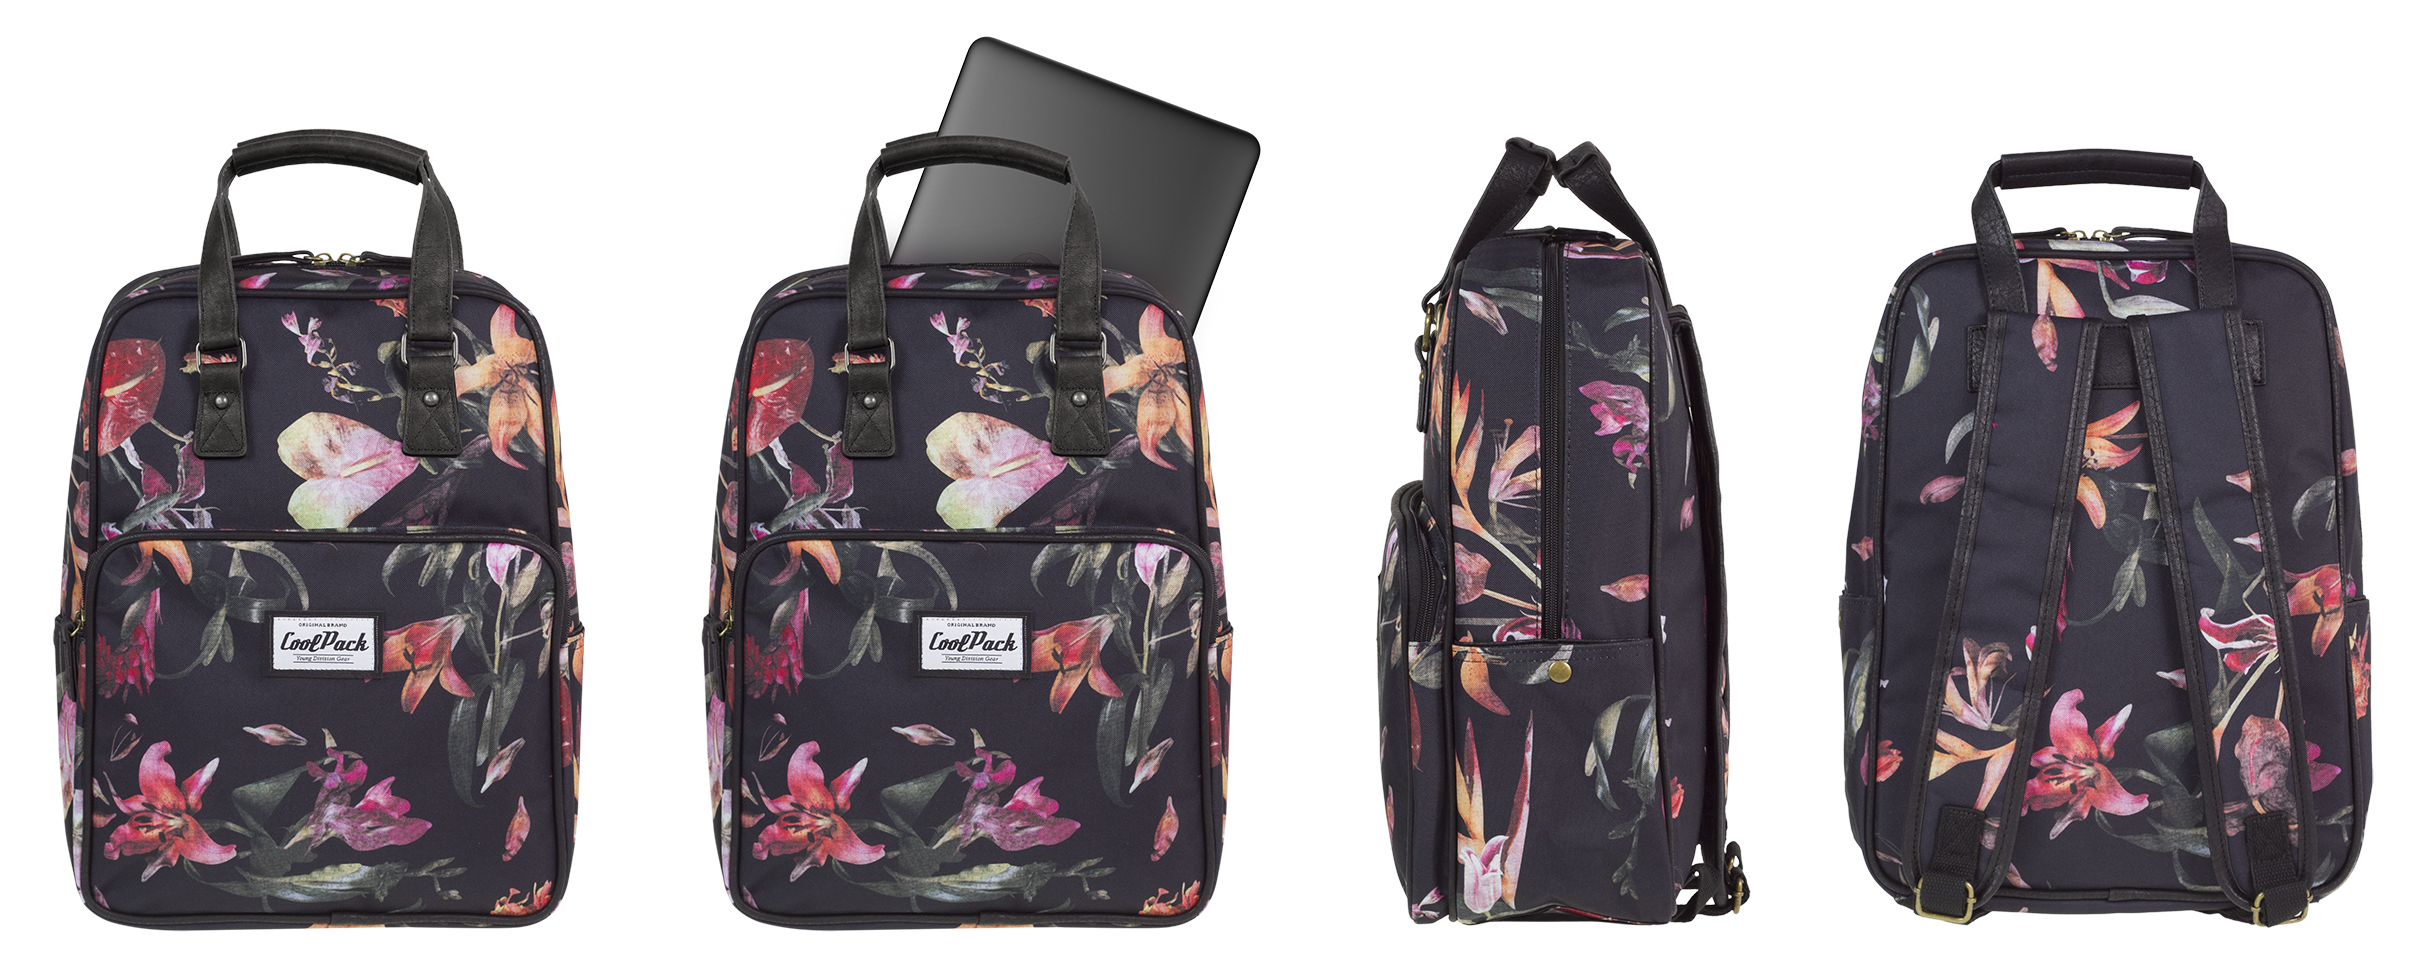 Coolpack - cubic - youth backpack - a096 - vintage